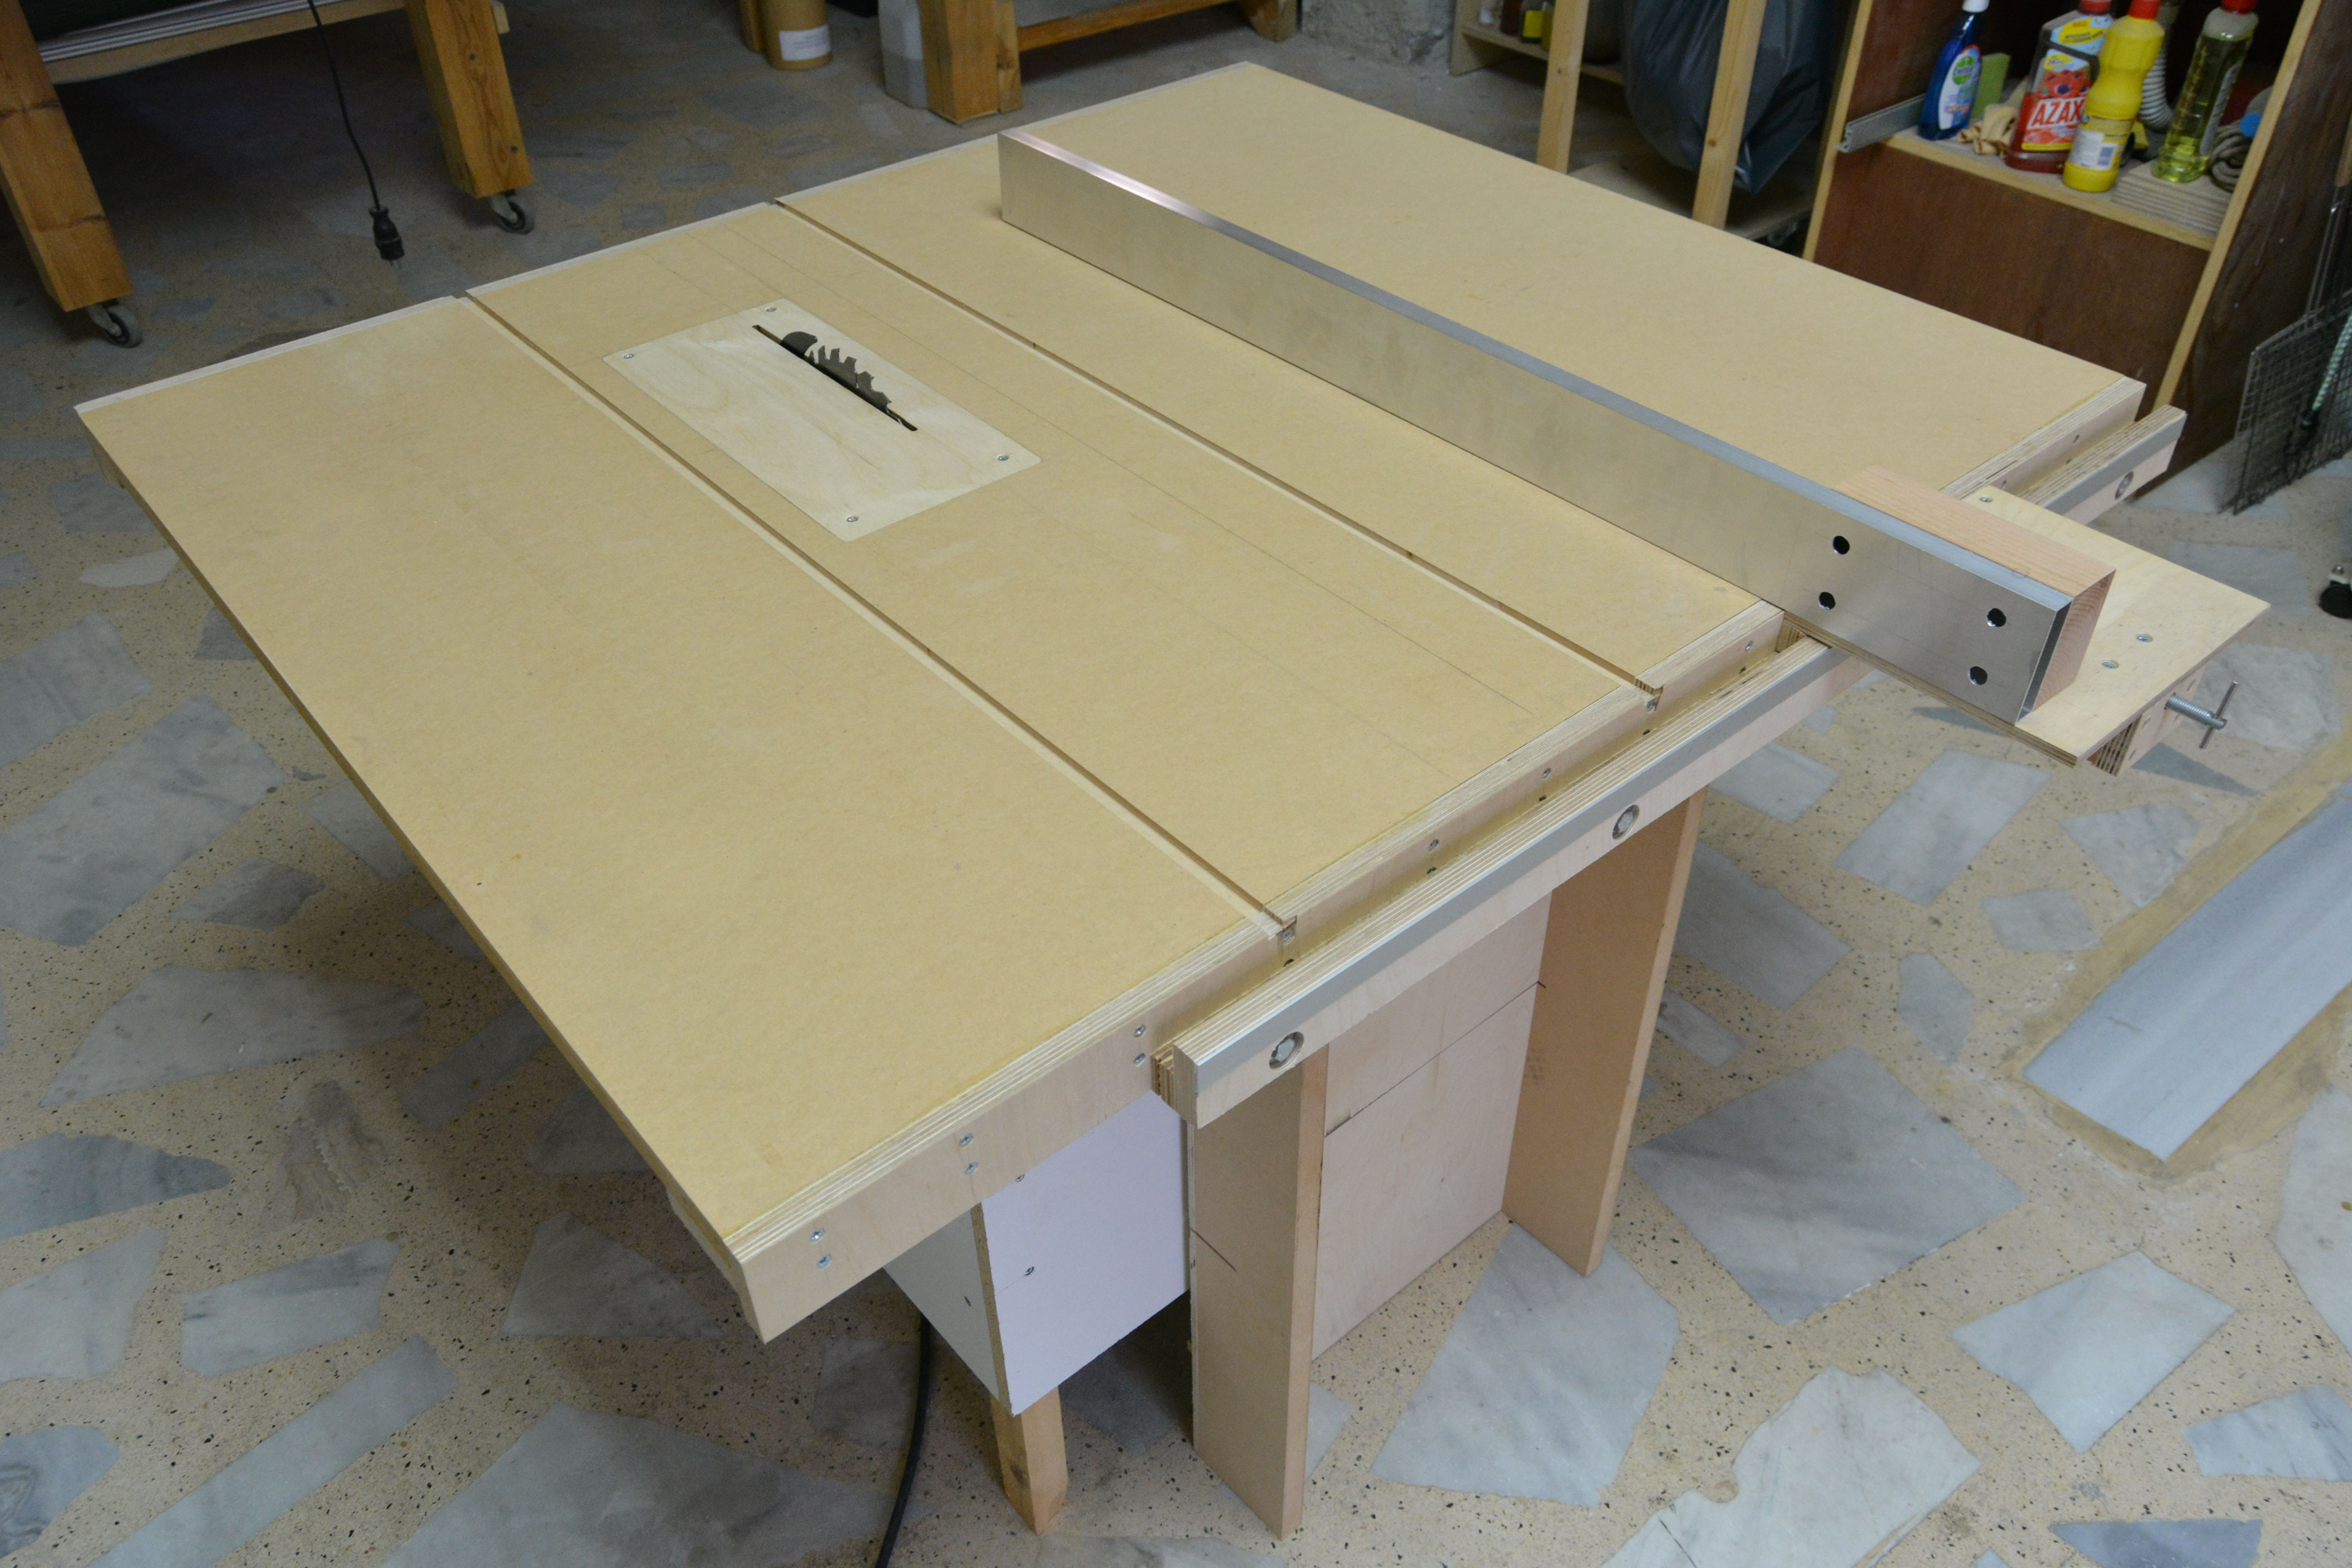 New DIY circular table saw! … Table saw, Circular saw